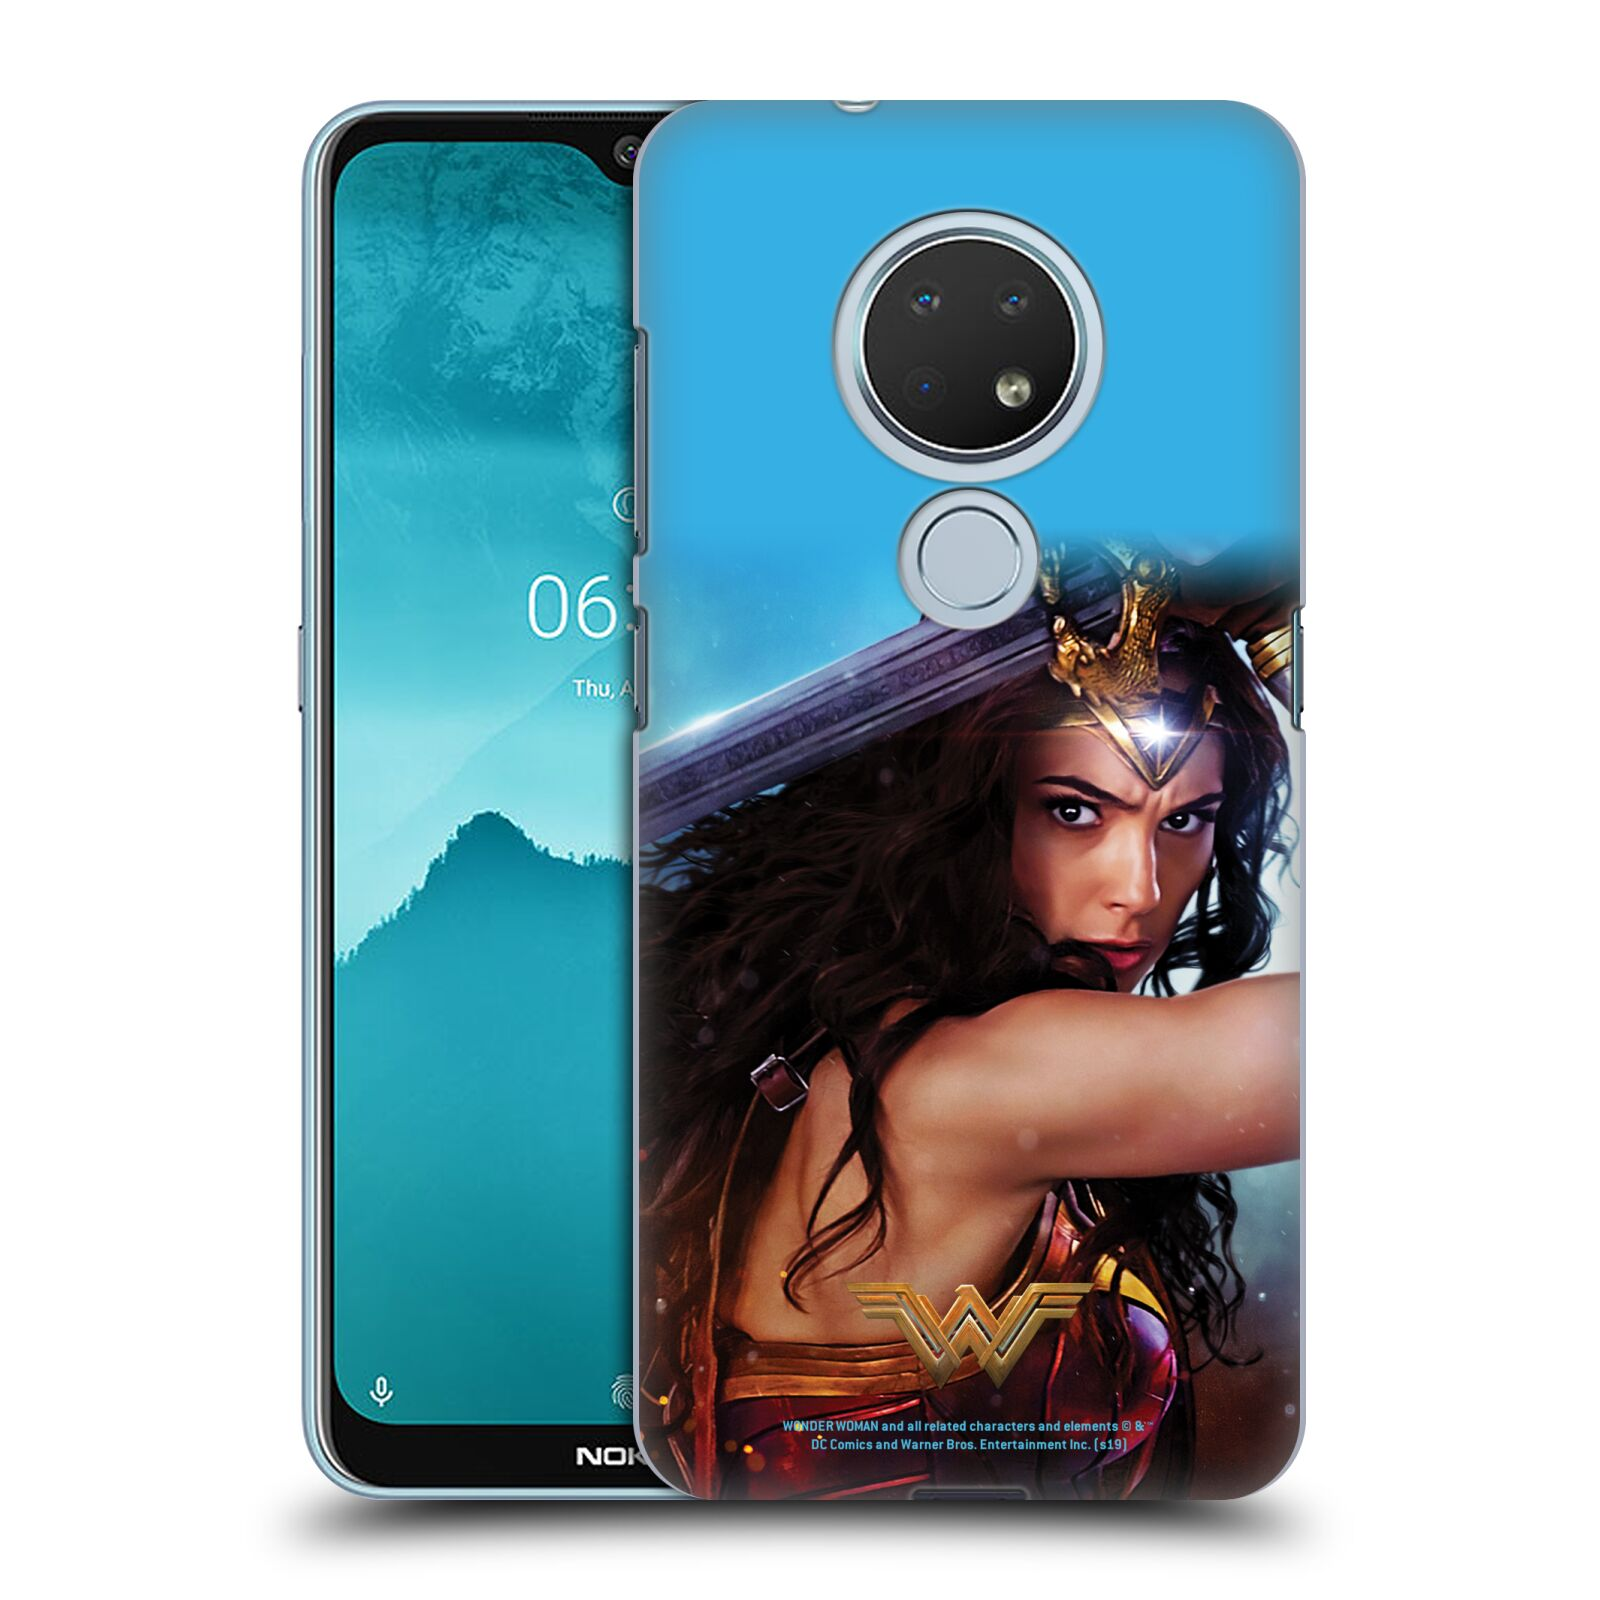 Official Wonder Woman Movie Posters Godkiller Sword 2 Case for Nokia 6.2